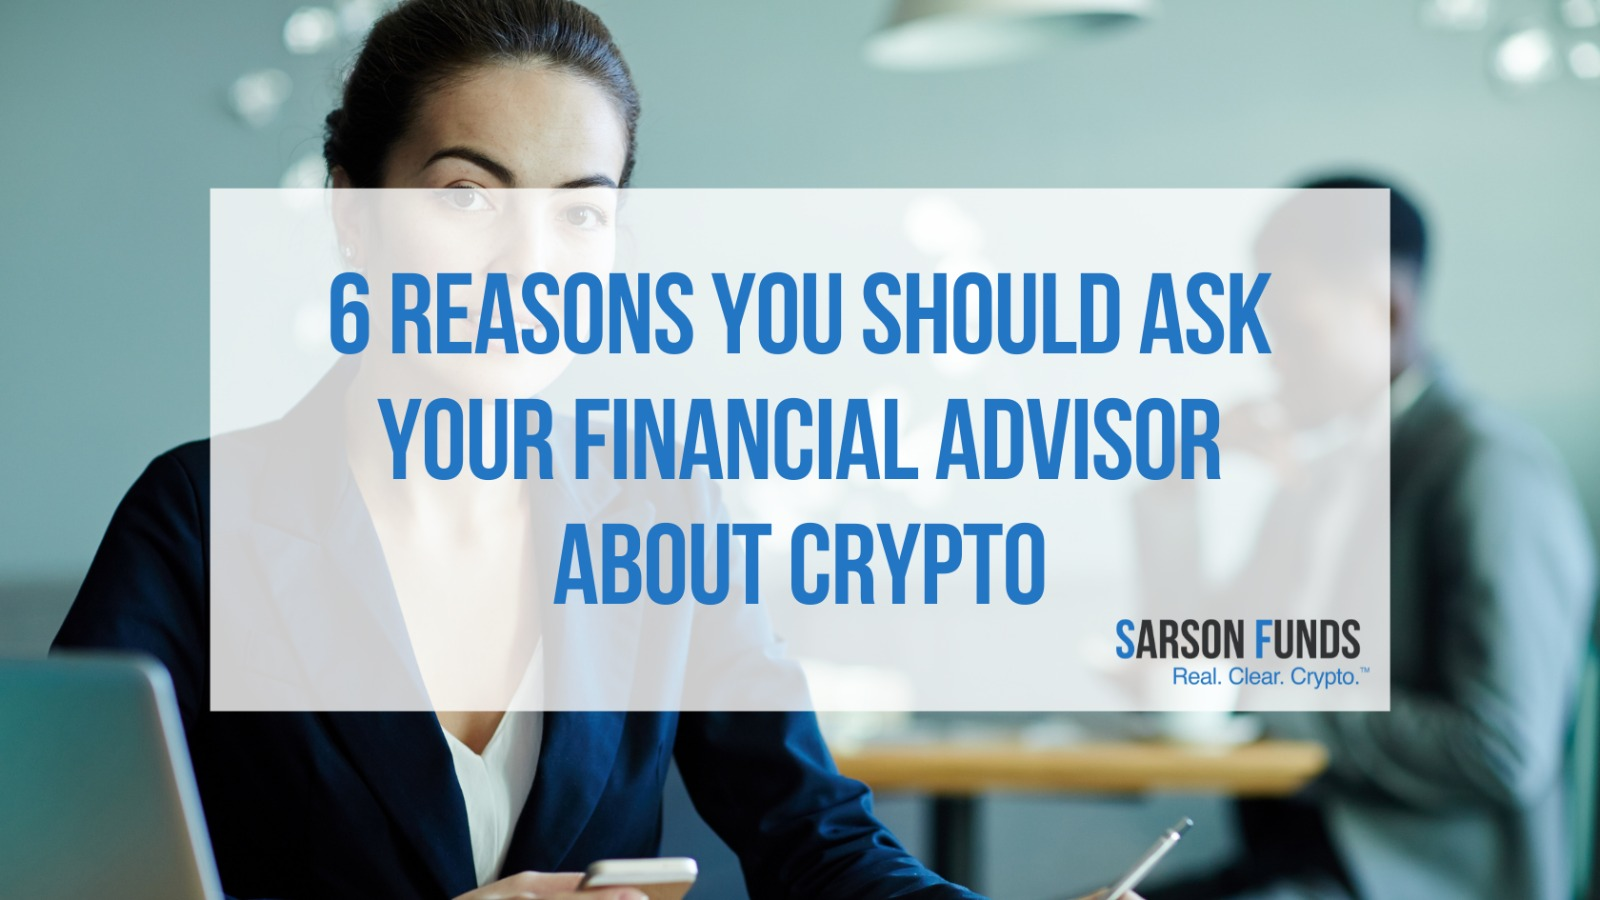 6 Reasons You Should Ask Your Financial Advisor About Crypto